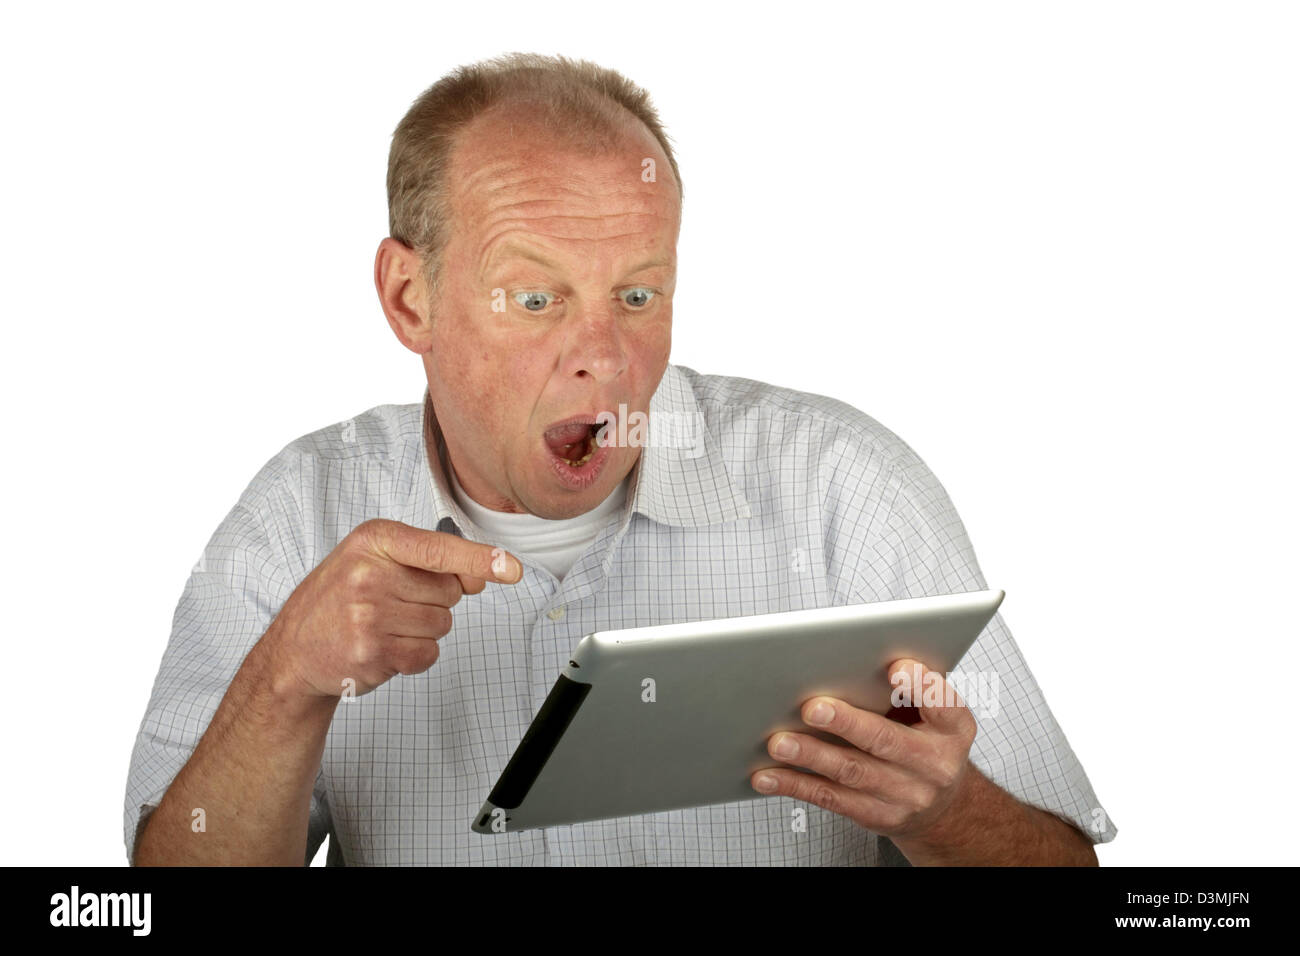 Astonished man looking at his tablet computer - Stock Image